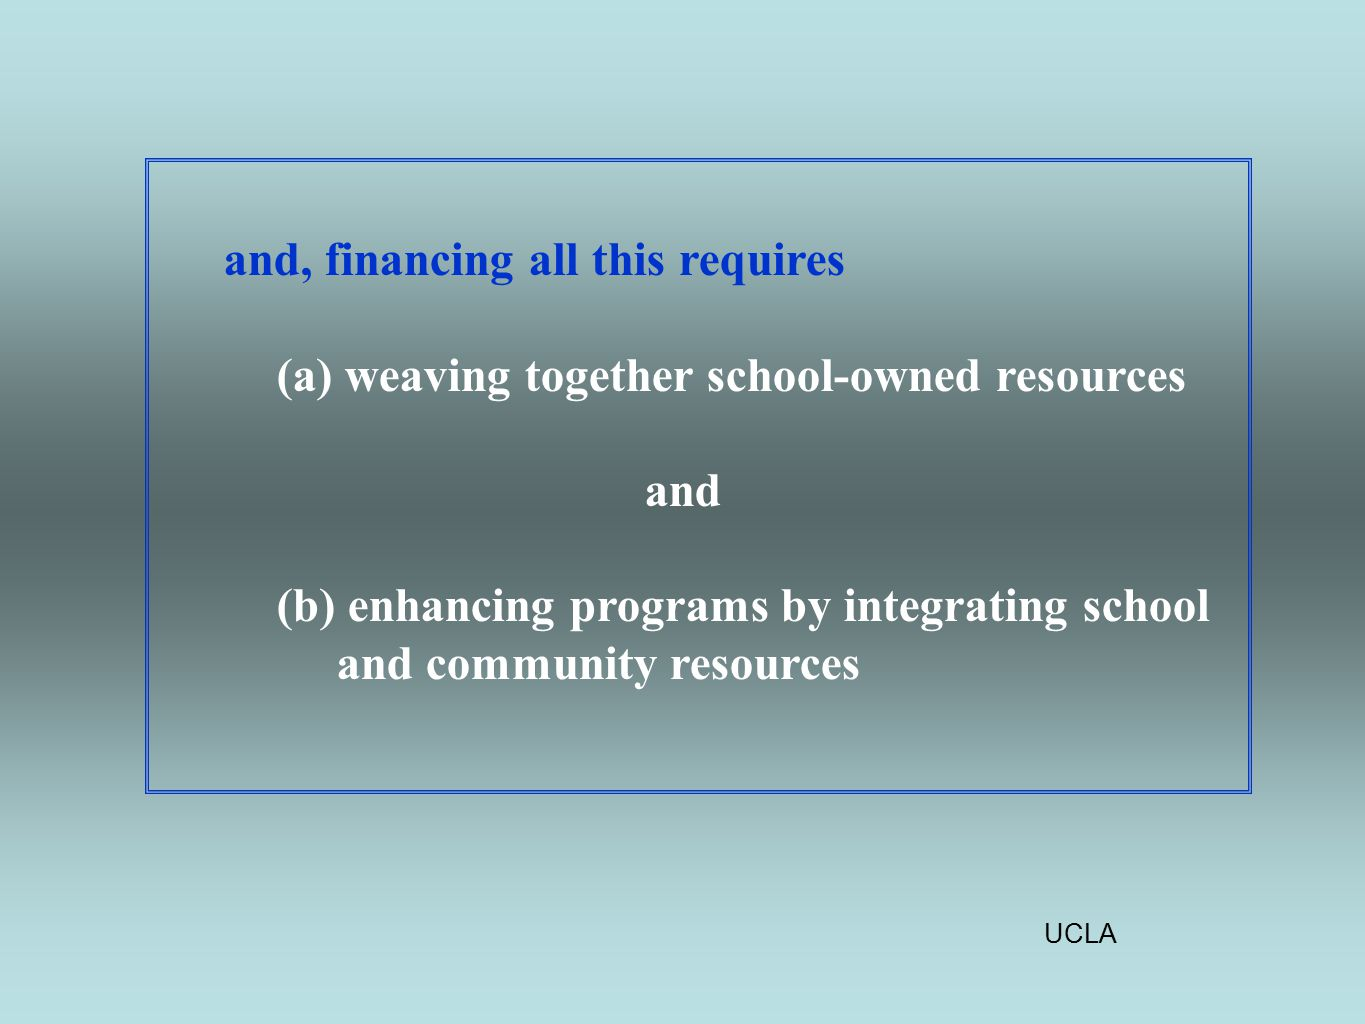 UCLA and, financing all this requires (a) weaving together school-owned resources and (b) enhancing programs by integrating school and community resources